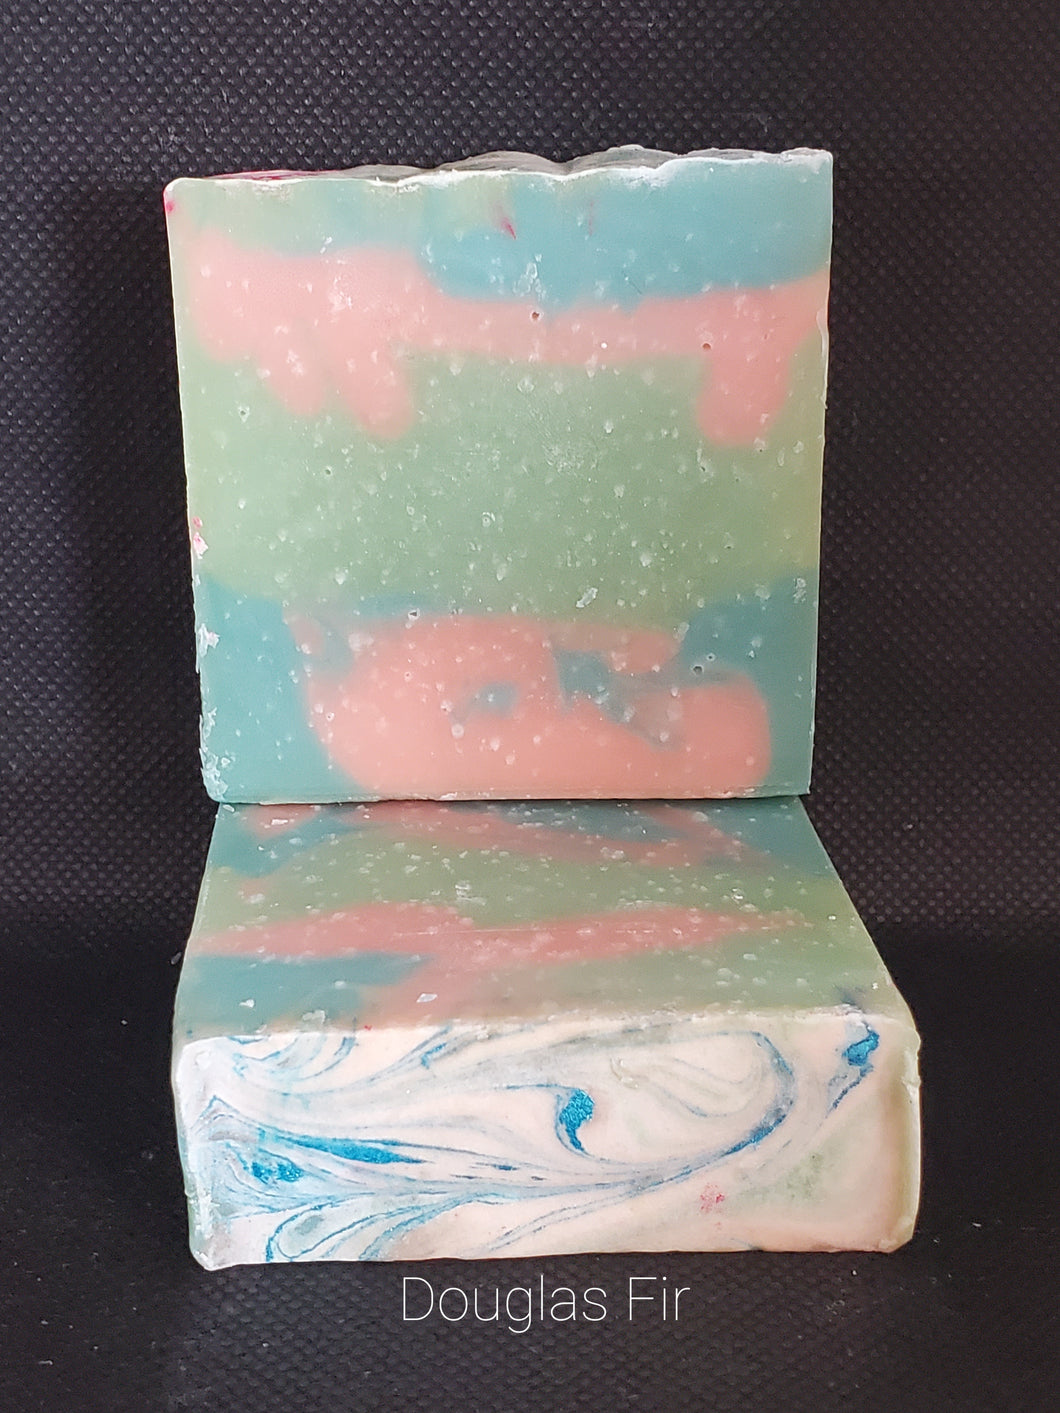 Douglas Fir Soap